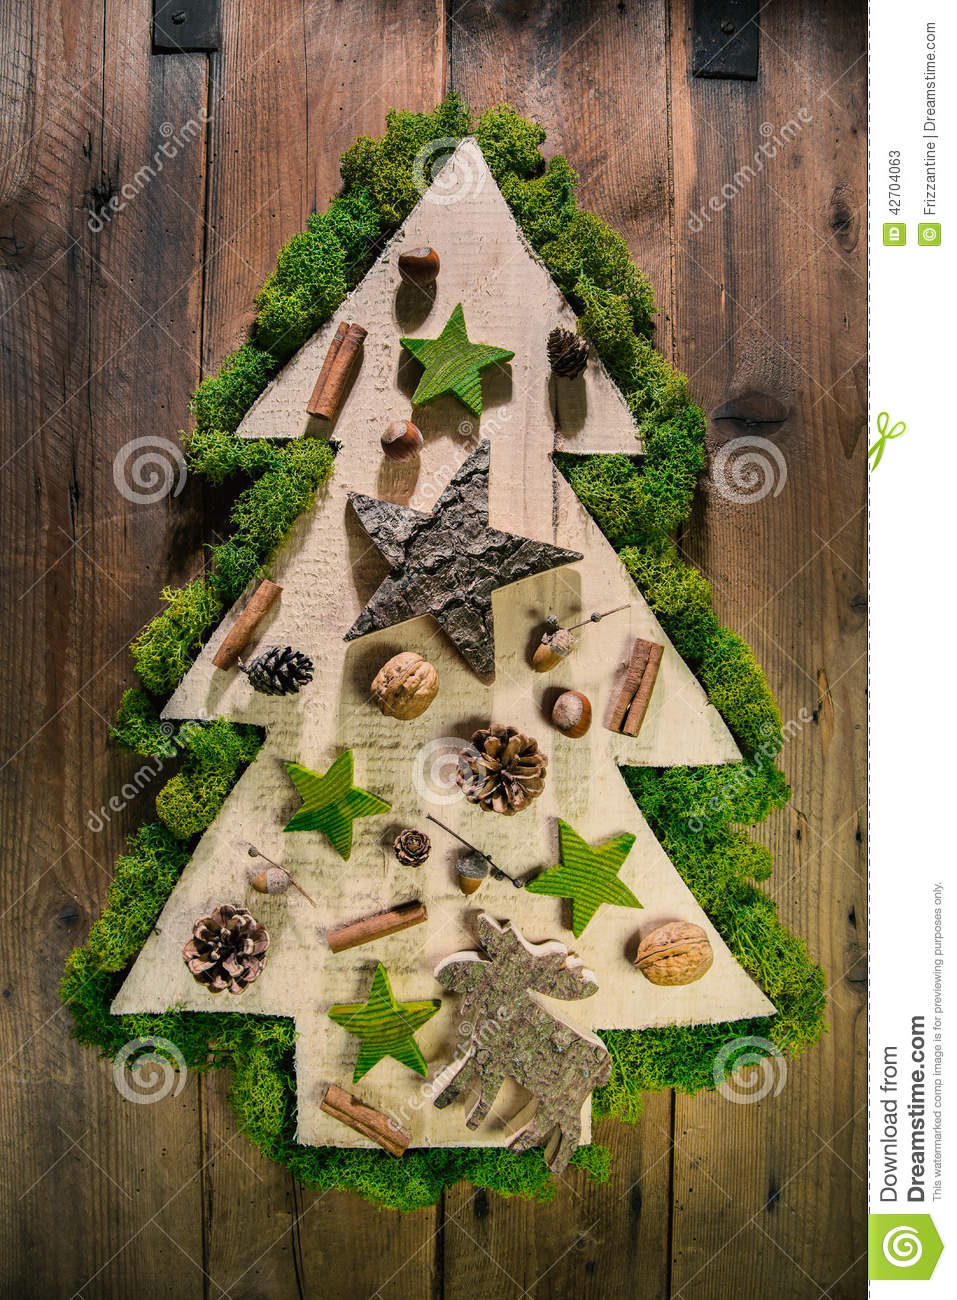 Christmas Tree Decorated With Natural Material From The